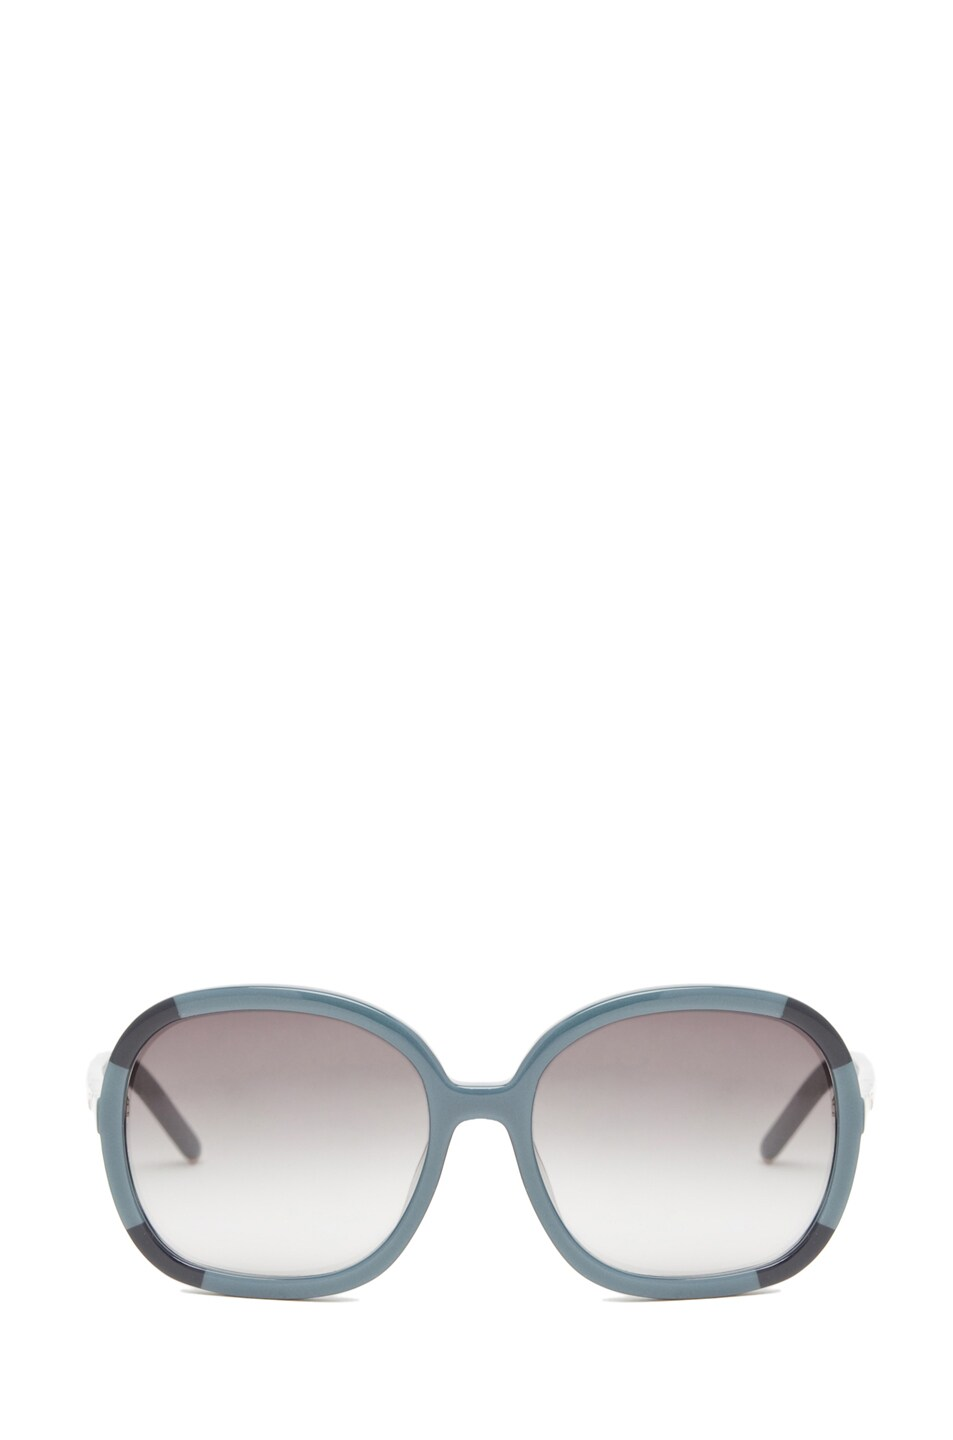 Image 1 of Chloe Sunglasses CL2189A in Petroleum Blue